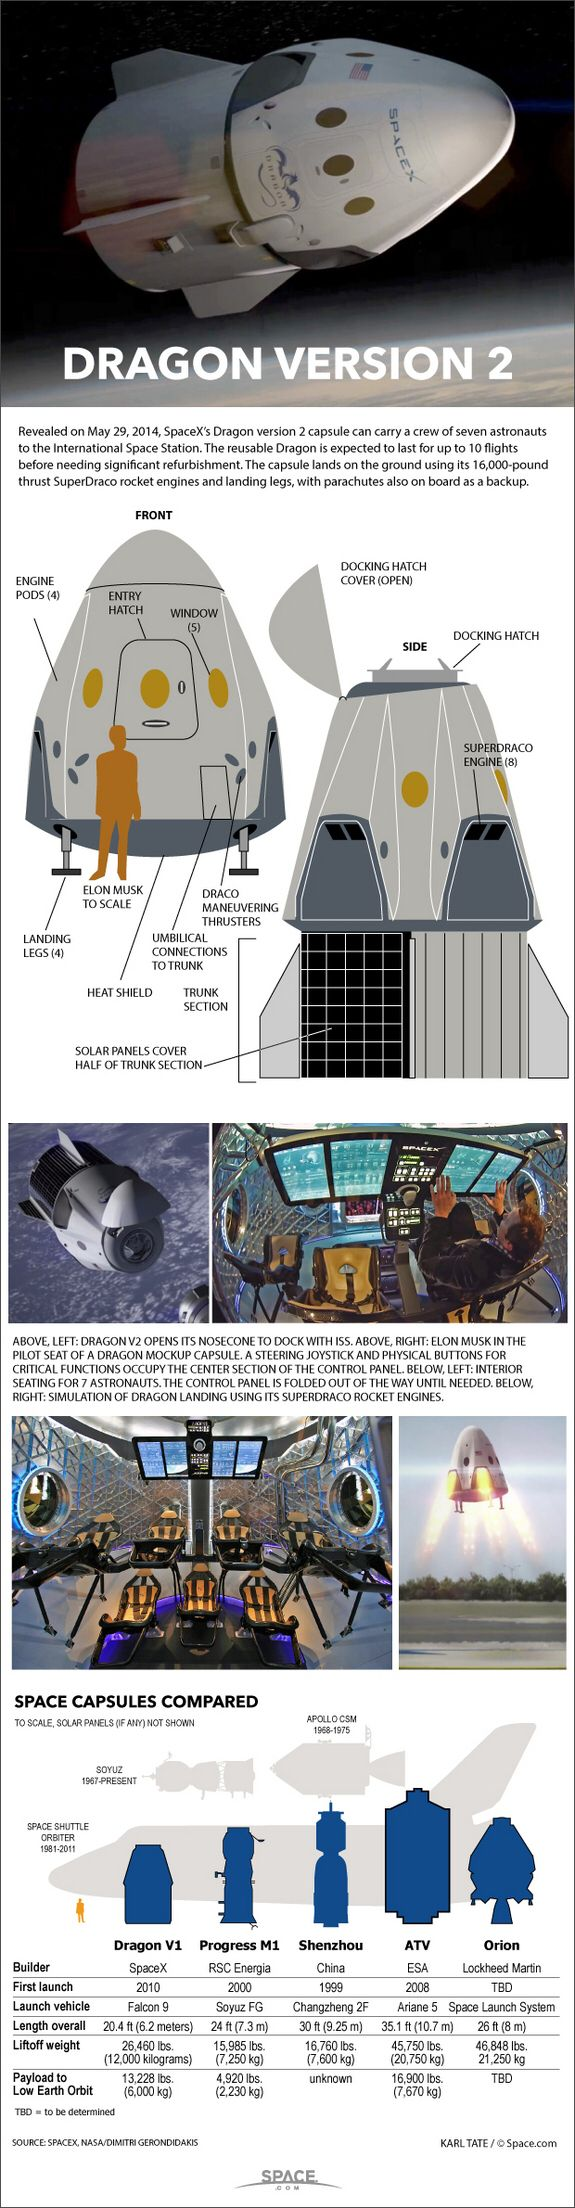 SpaceX's manned Dragon space capsule is a private spacecraft designed to carry seven astronauts on missions to and from low-Earth orbit. The Dragon spacecraft is a gumdrop-shaped capsule powered by two solar arrays. It is a crewed version of the robotic Dragon spacecraft developed by SpaceX (Space Exploration Technologies) of Hawthorne, Calif.